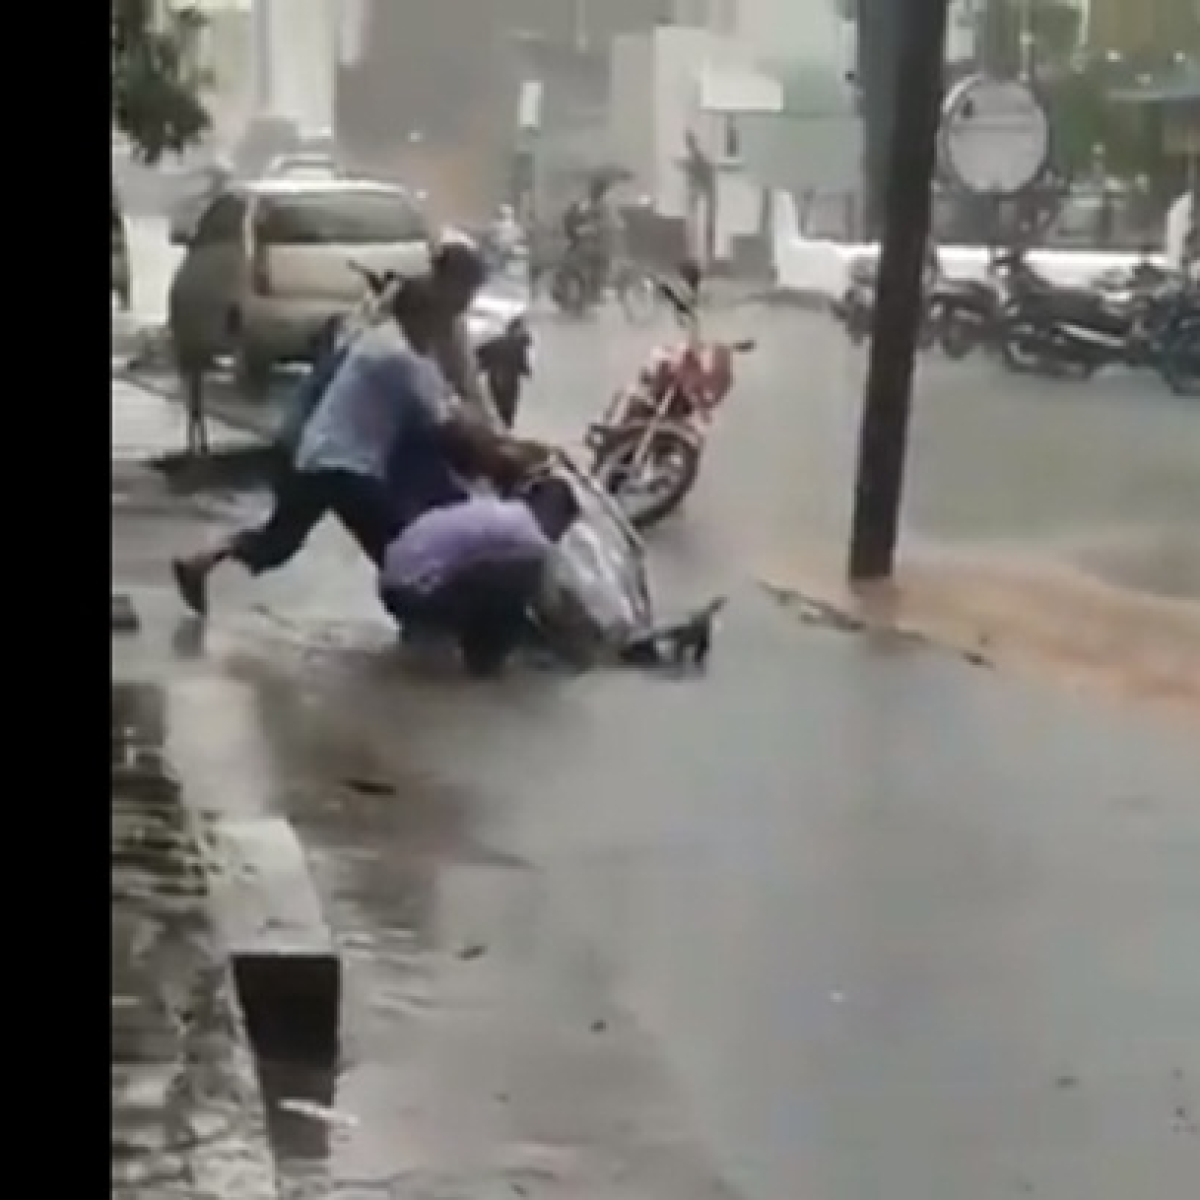 After video of two-wheeler being swallowed by open manhole goes viral, BMC clarifies it is not from Mumbai